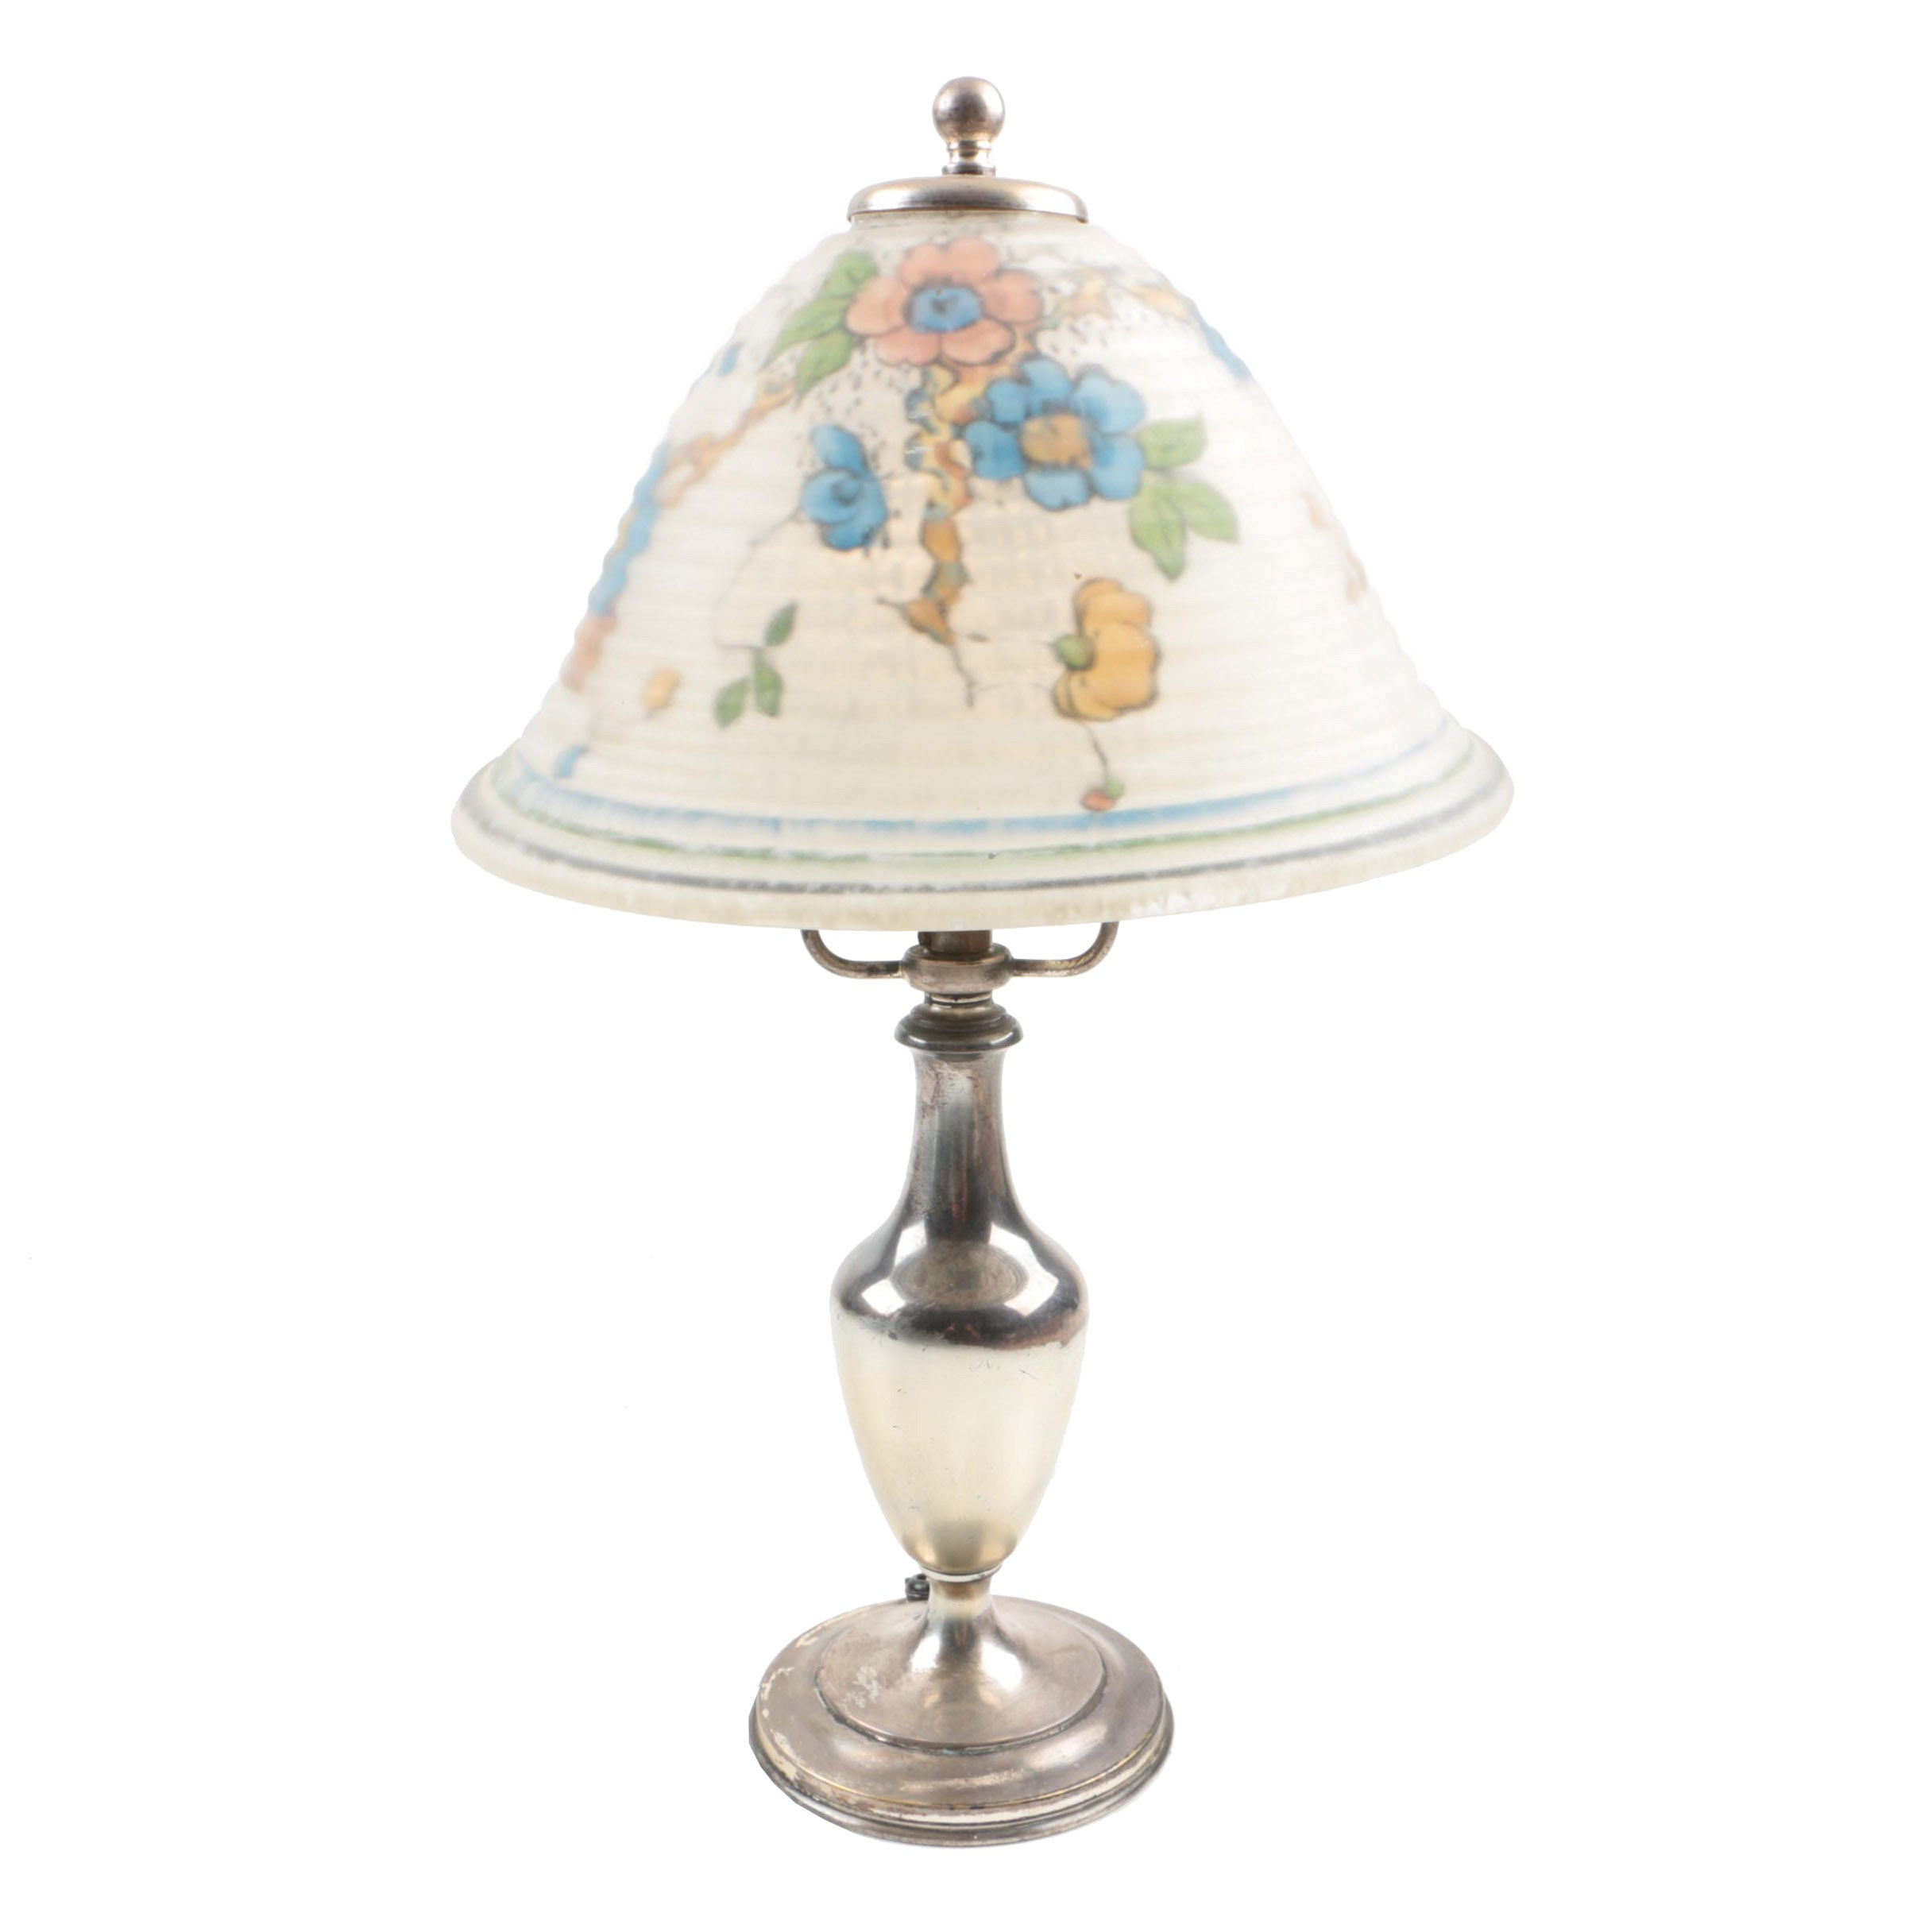 Vintage Pairpoint Reverse Painted Glass and Silver-Tone Desk Lamp